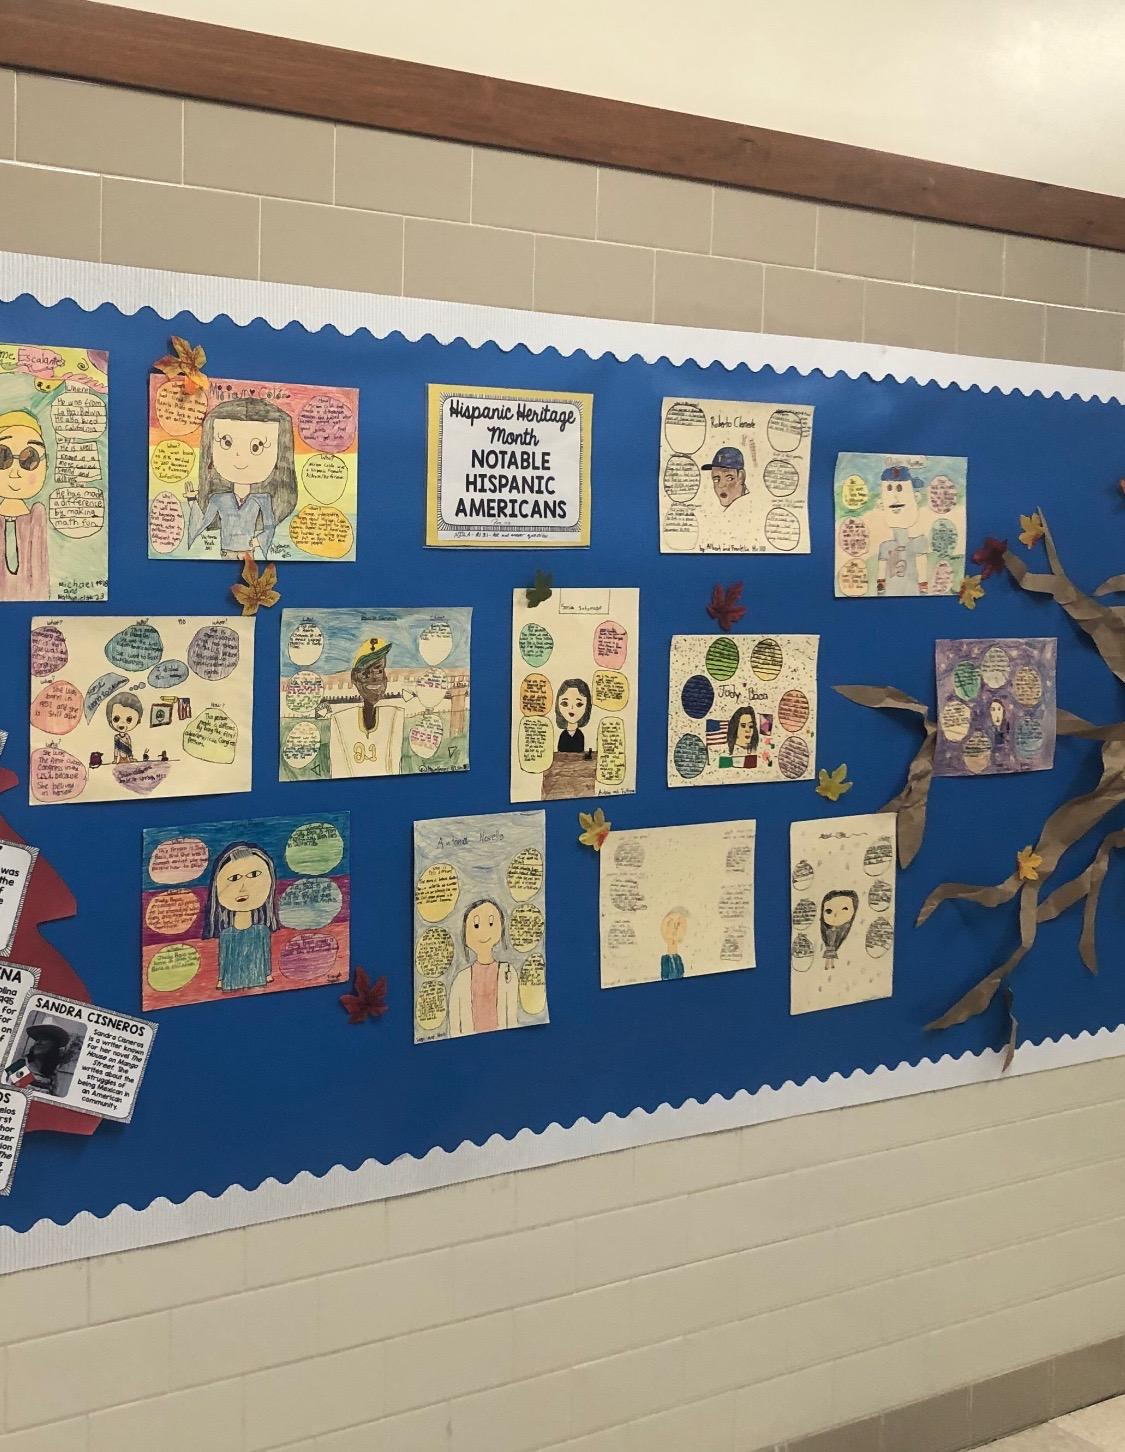 notable hispanic americans display